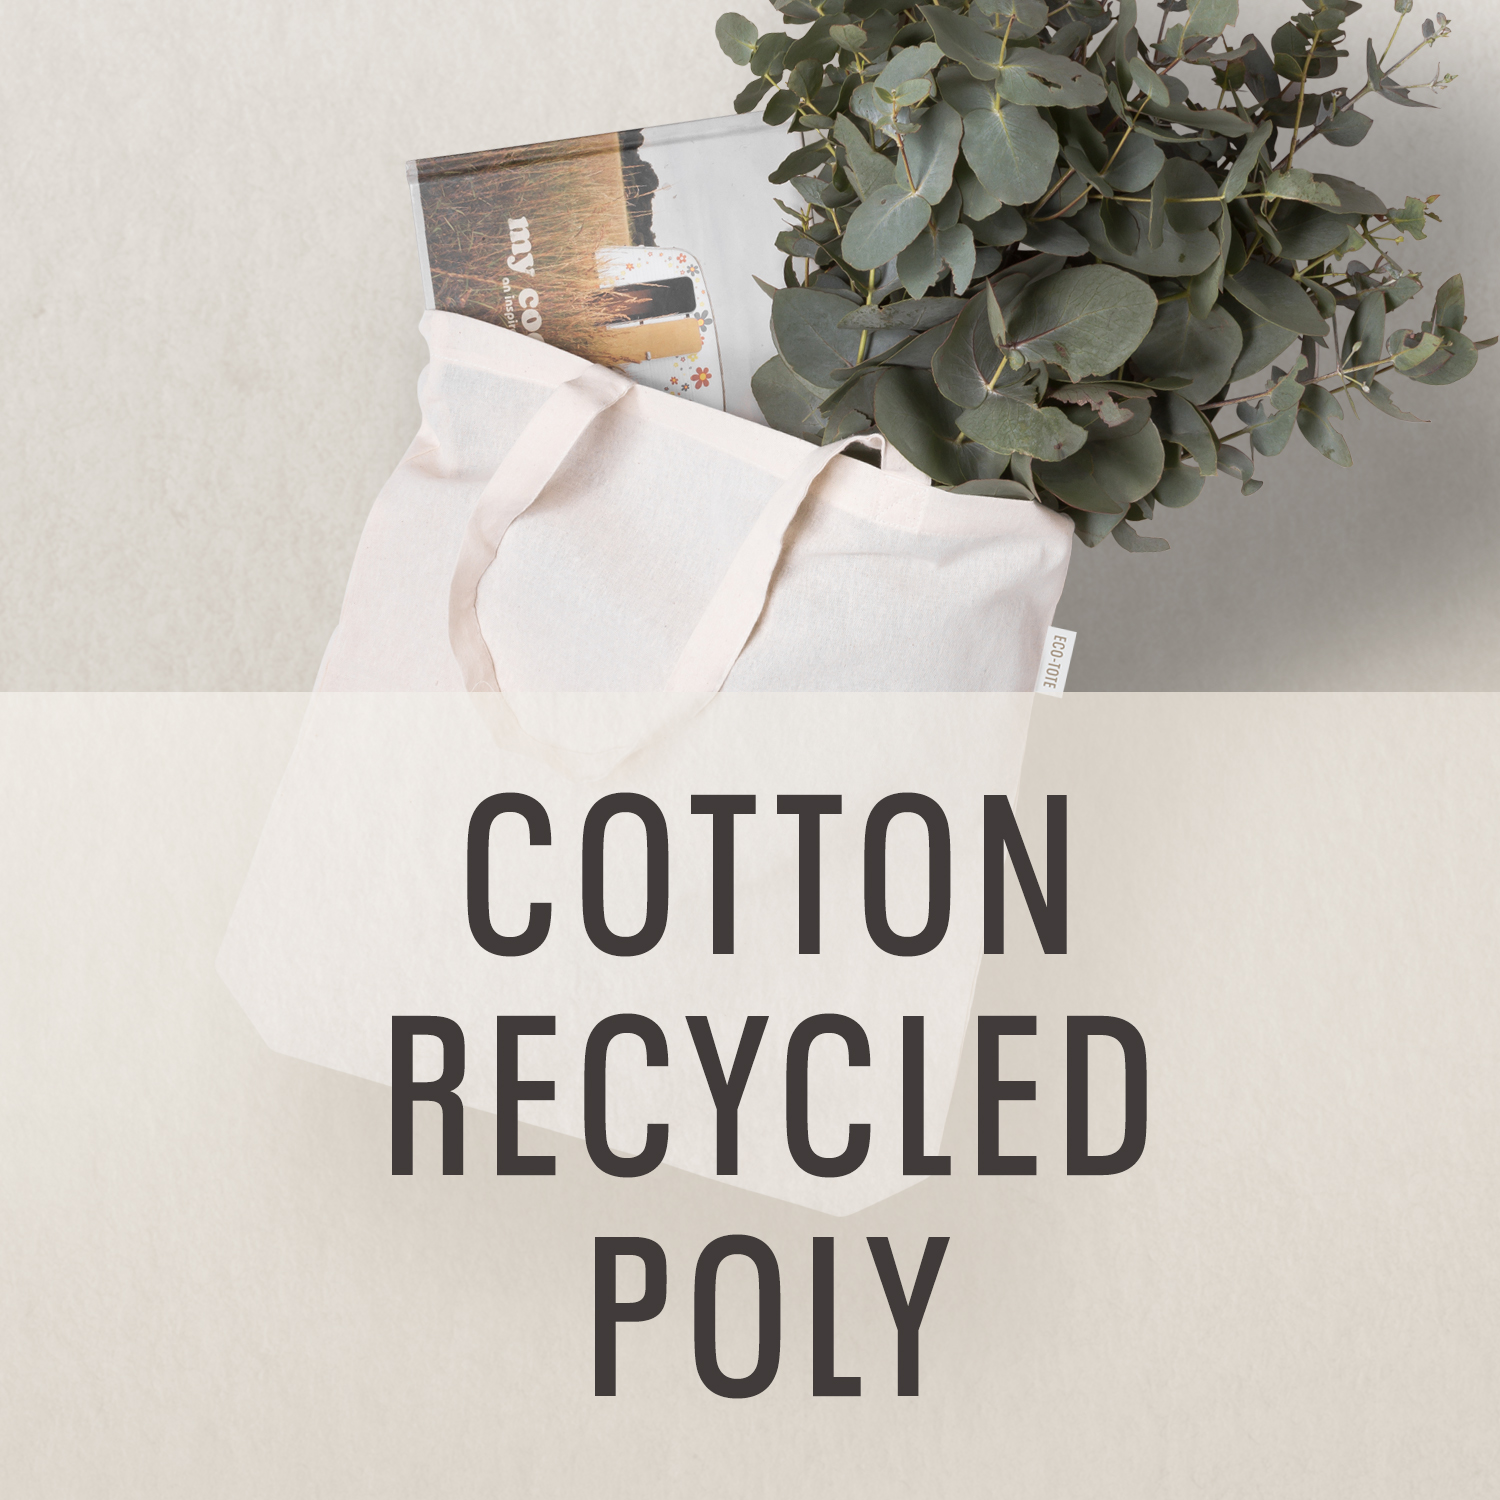 COTTON-POLY SKU.jpg